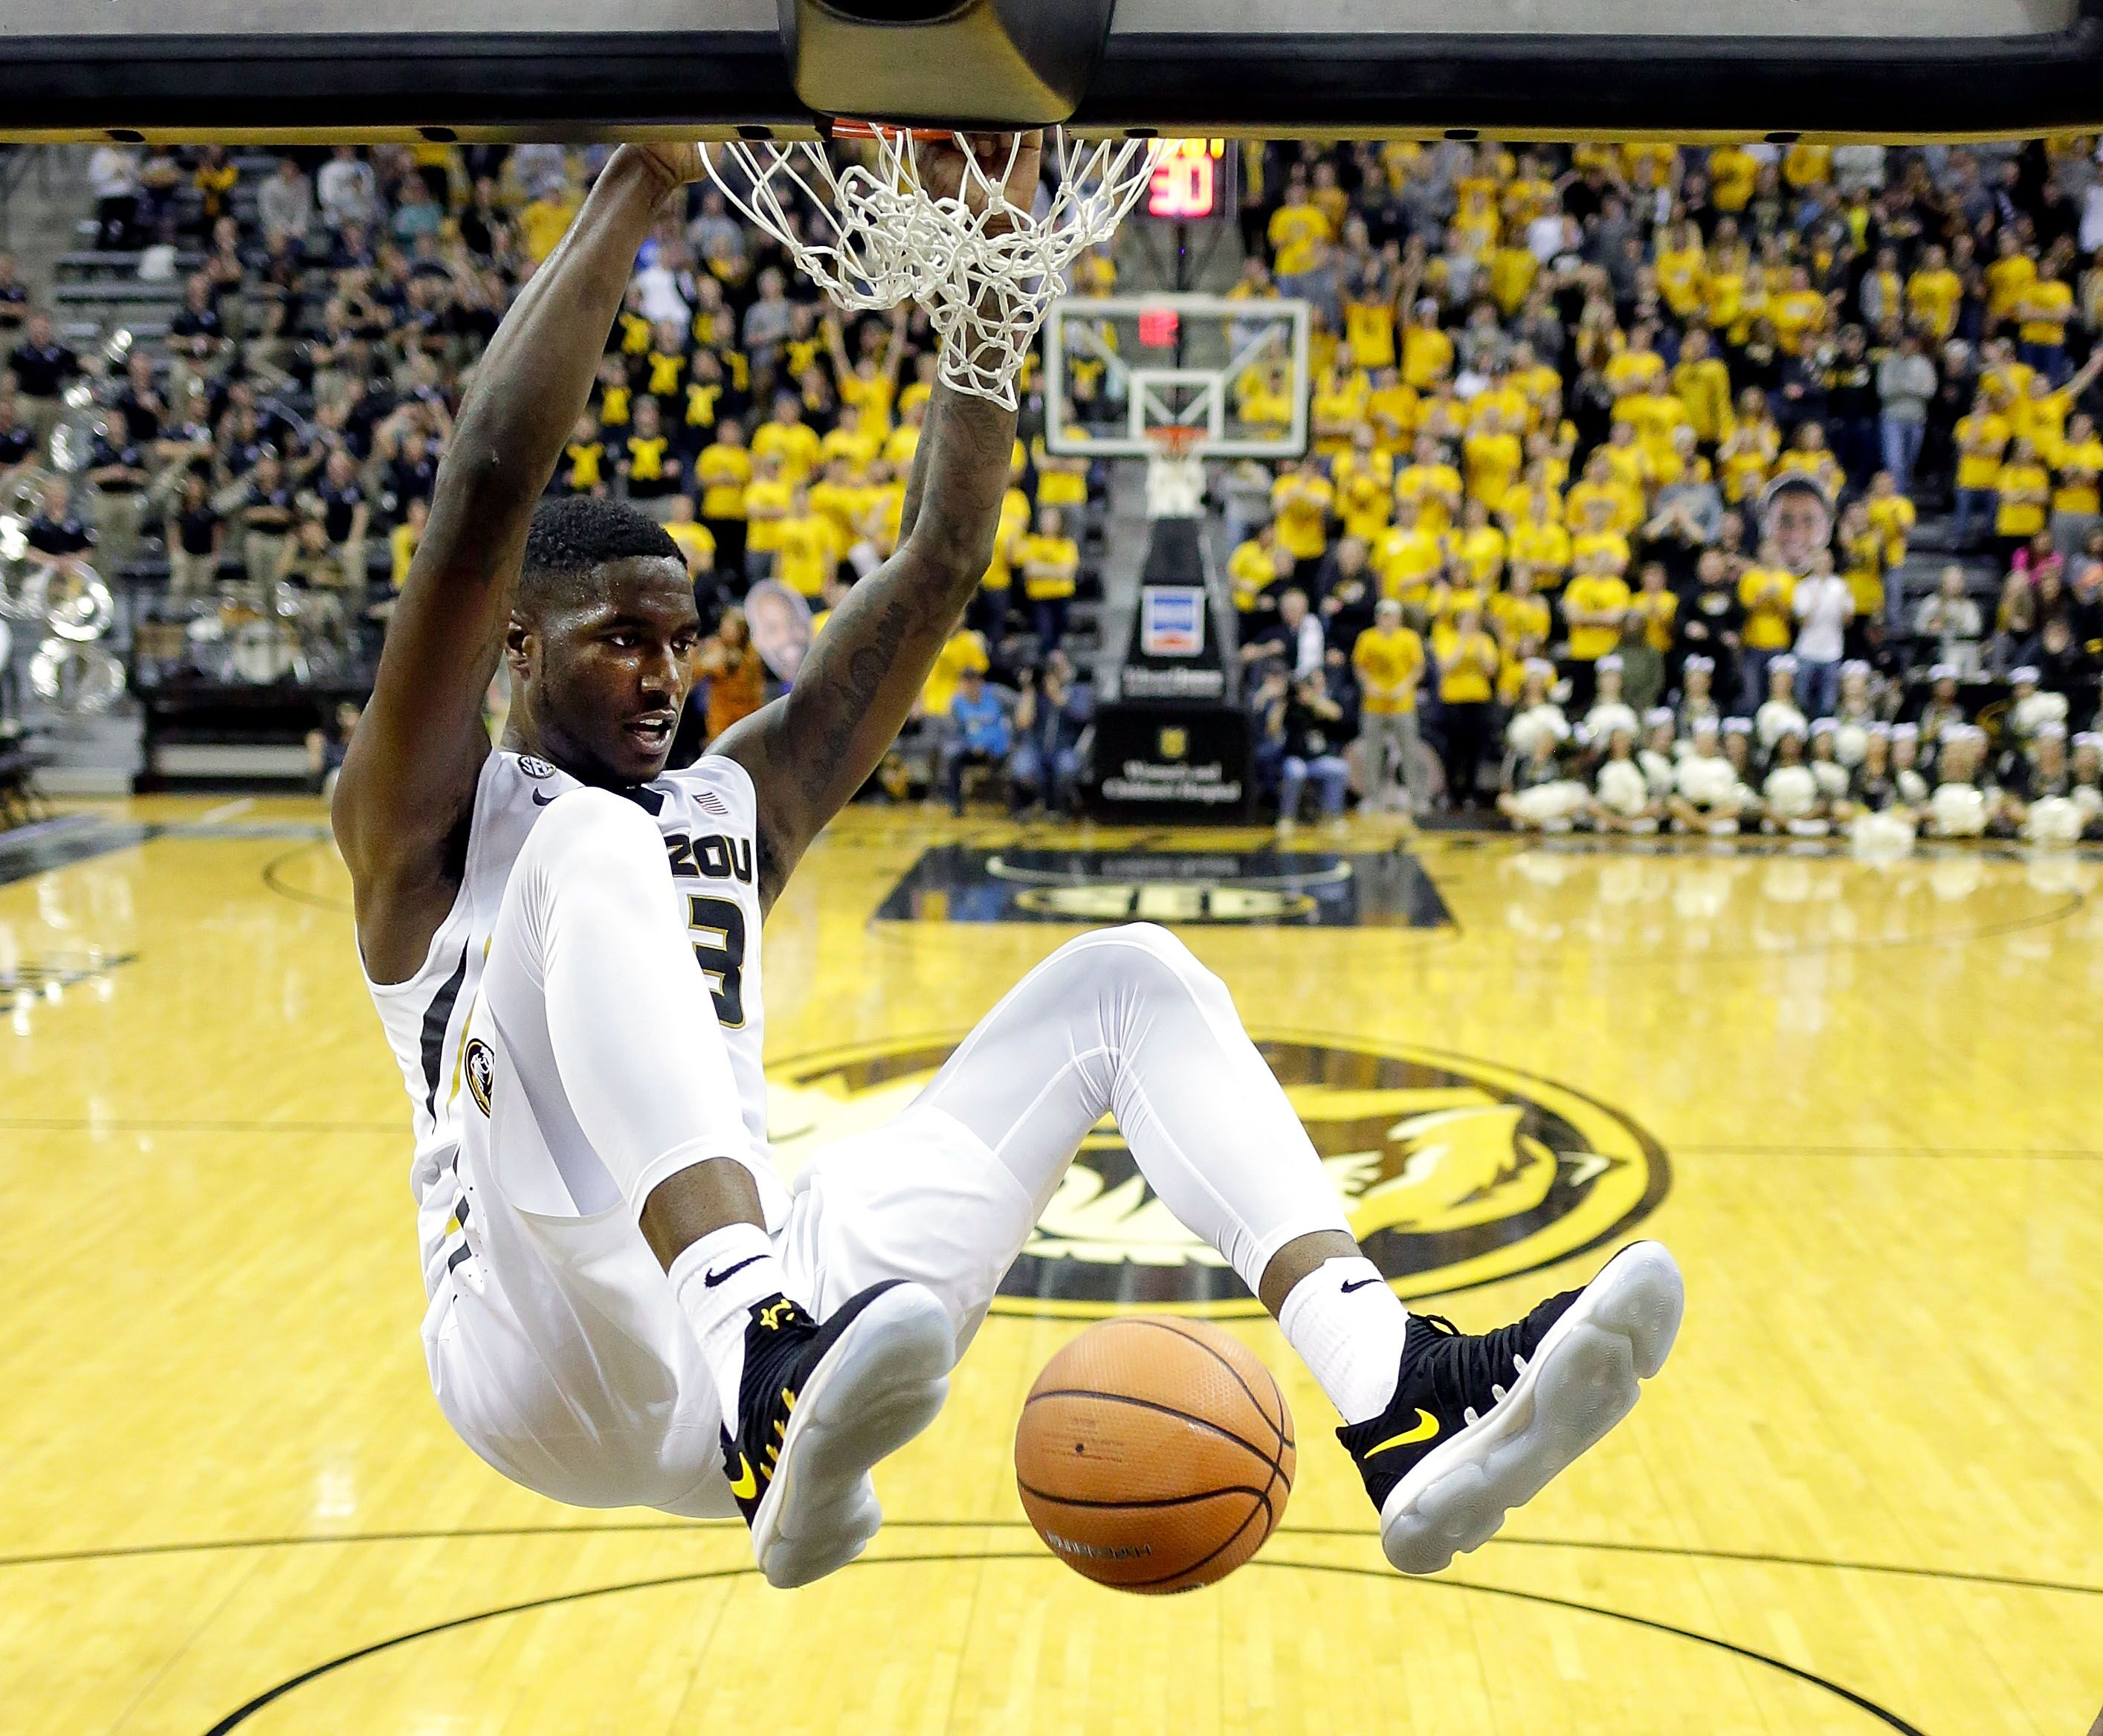 Mizzou basketball: Look at this conference schedule